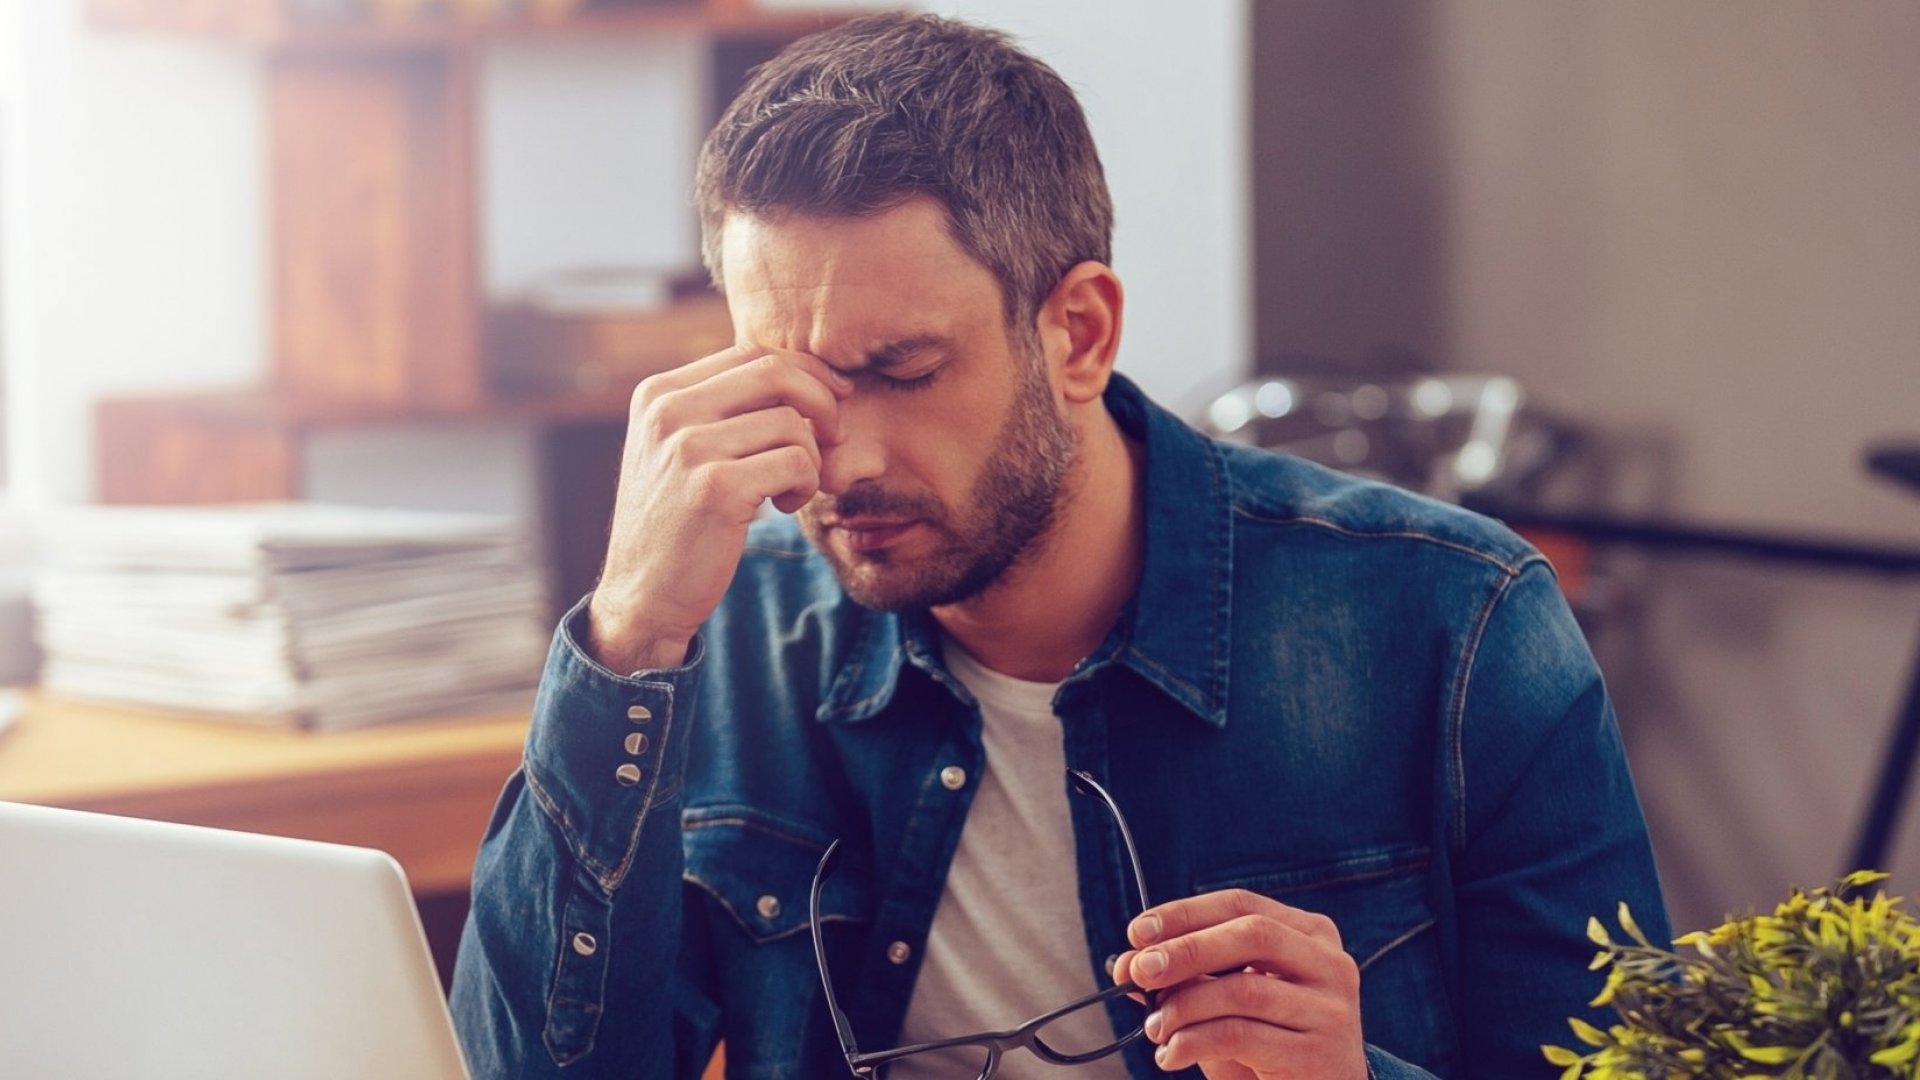 The Real Reason Entrepreneurs Feel Burned Out (That No One Is Talking About)